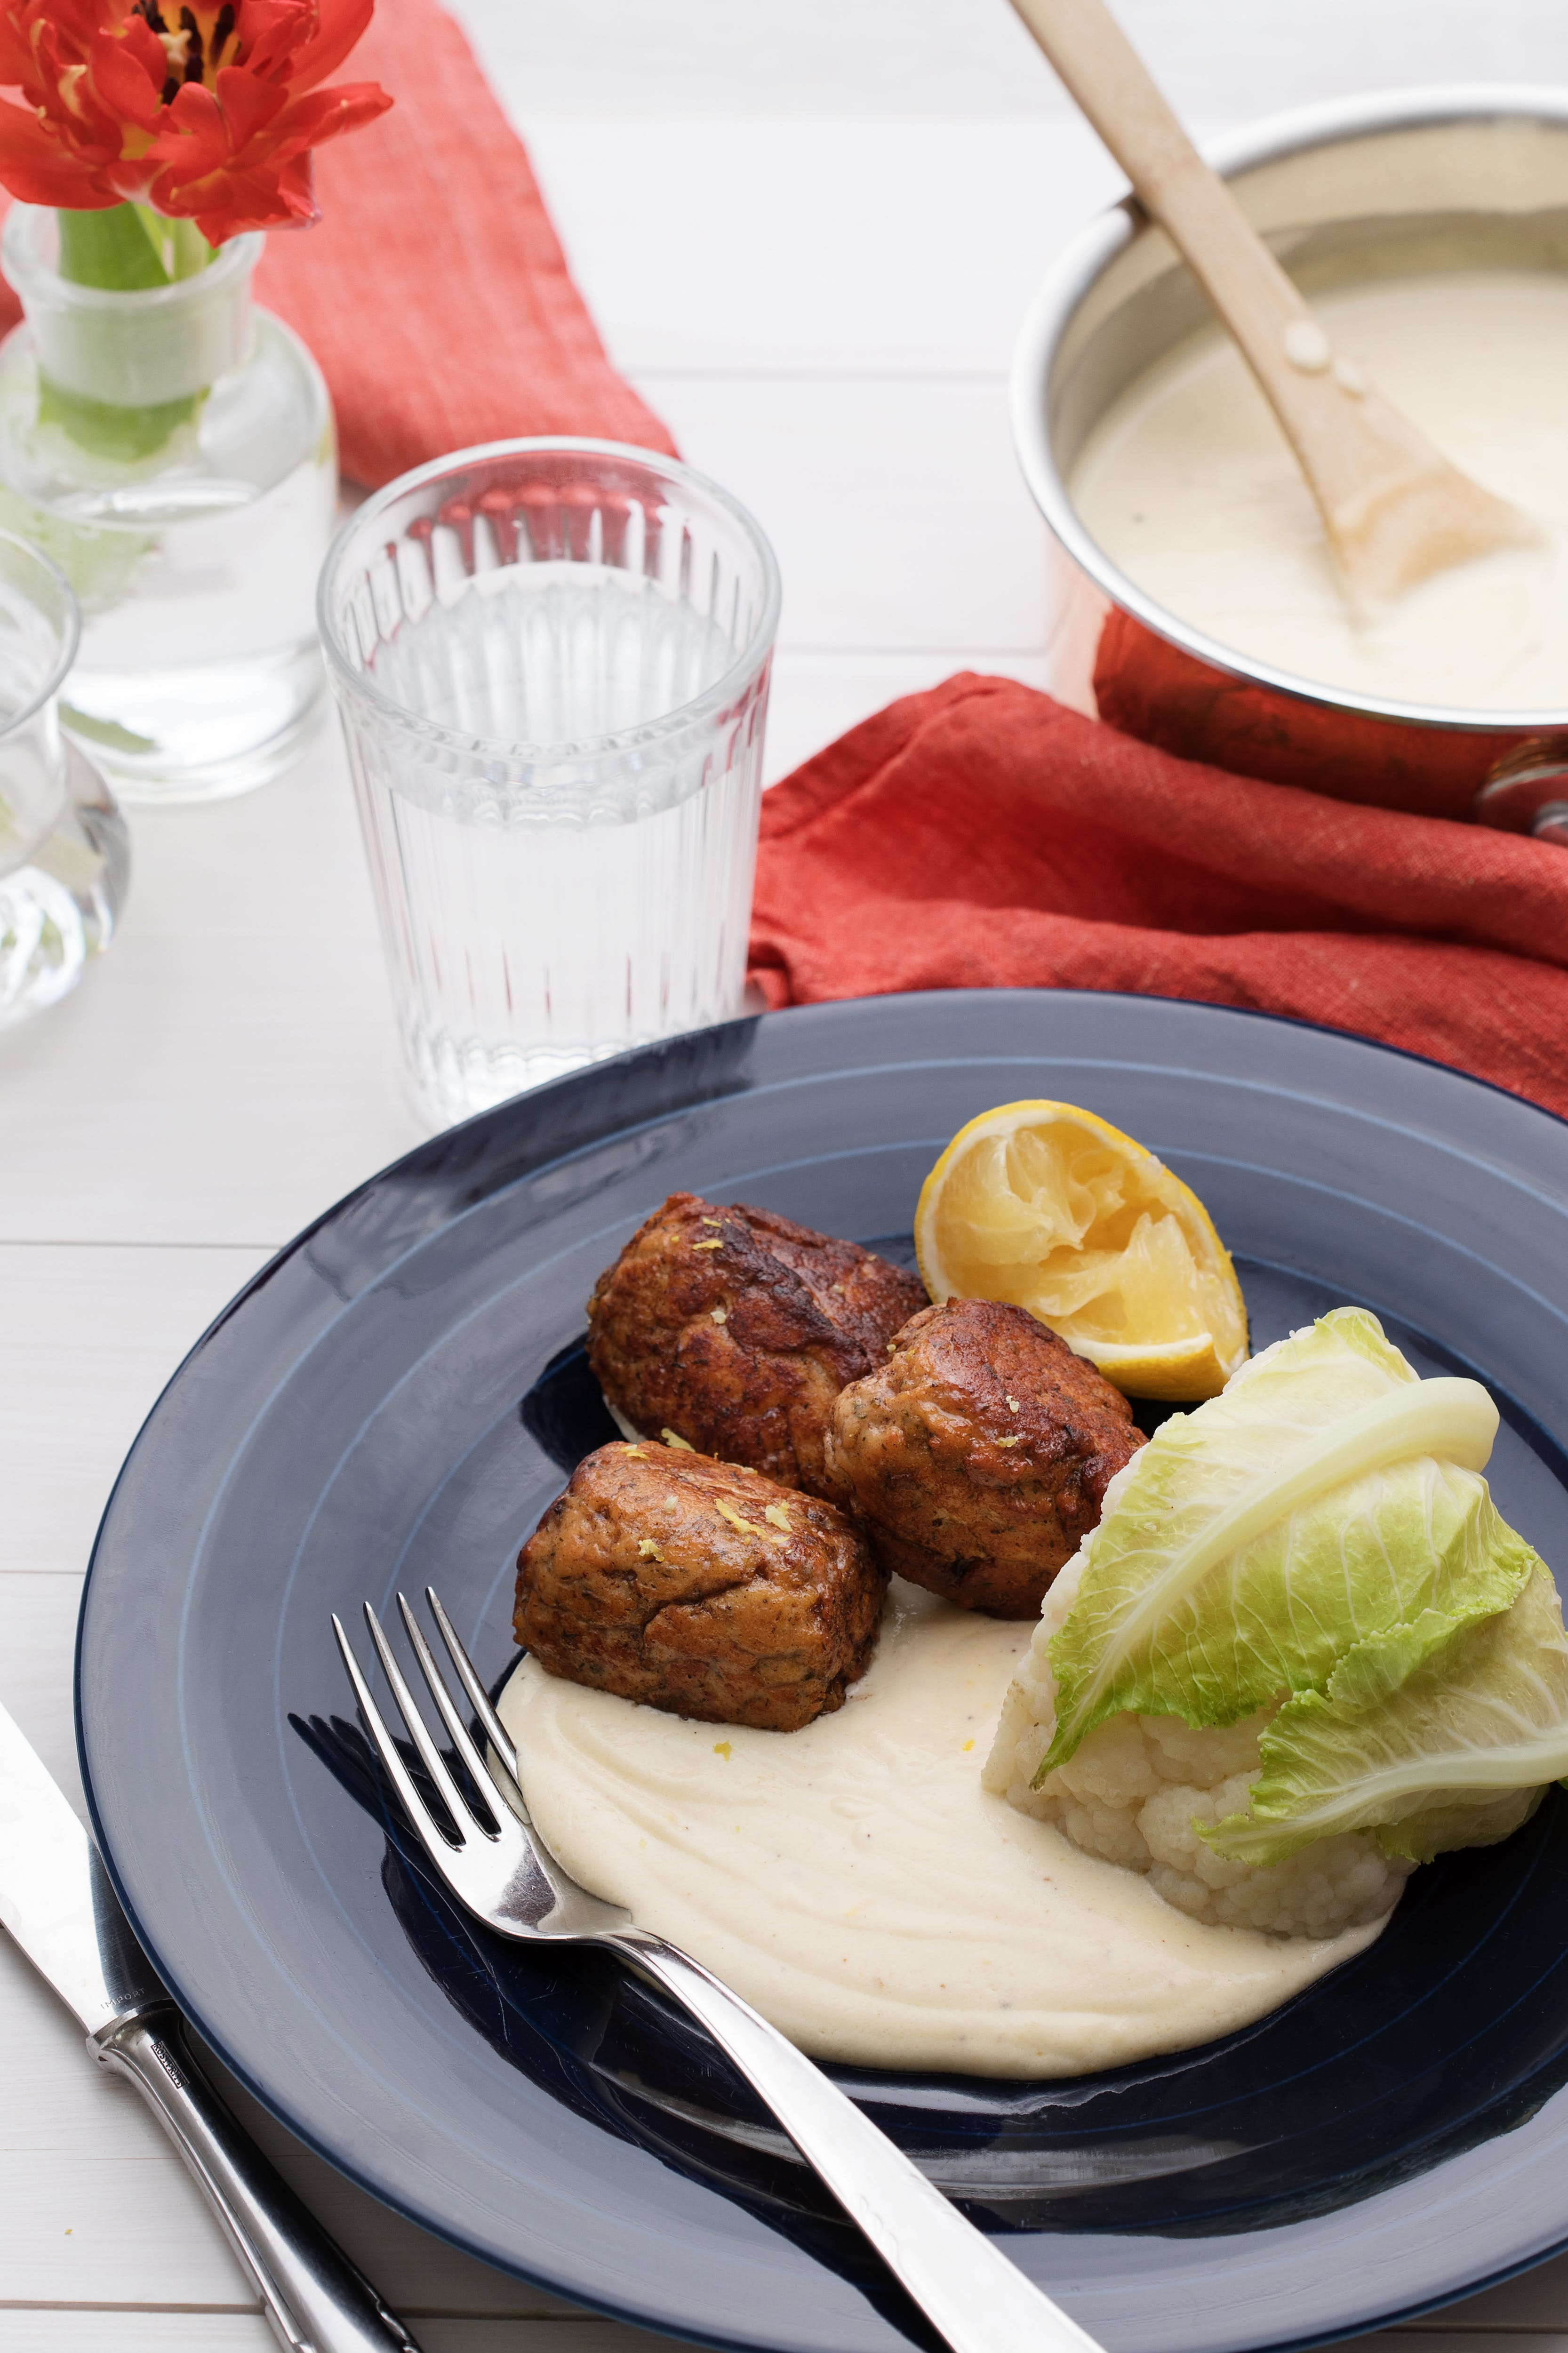 Salmon meatballs with lemon béchamel sauce